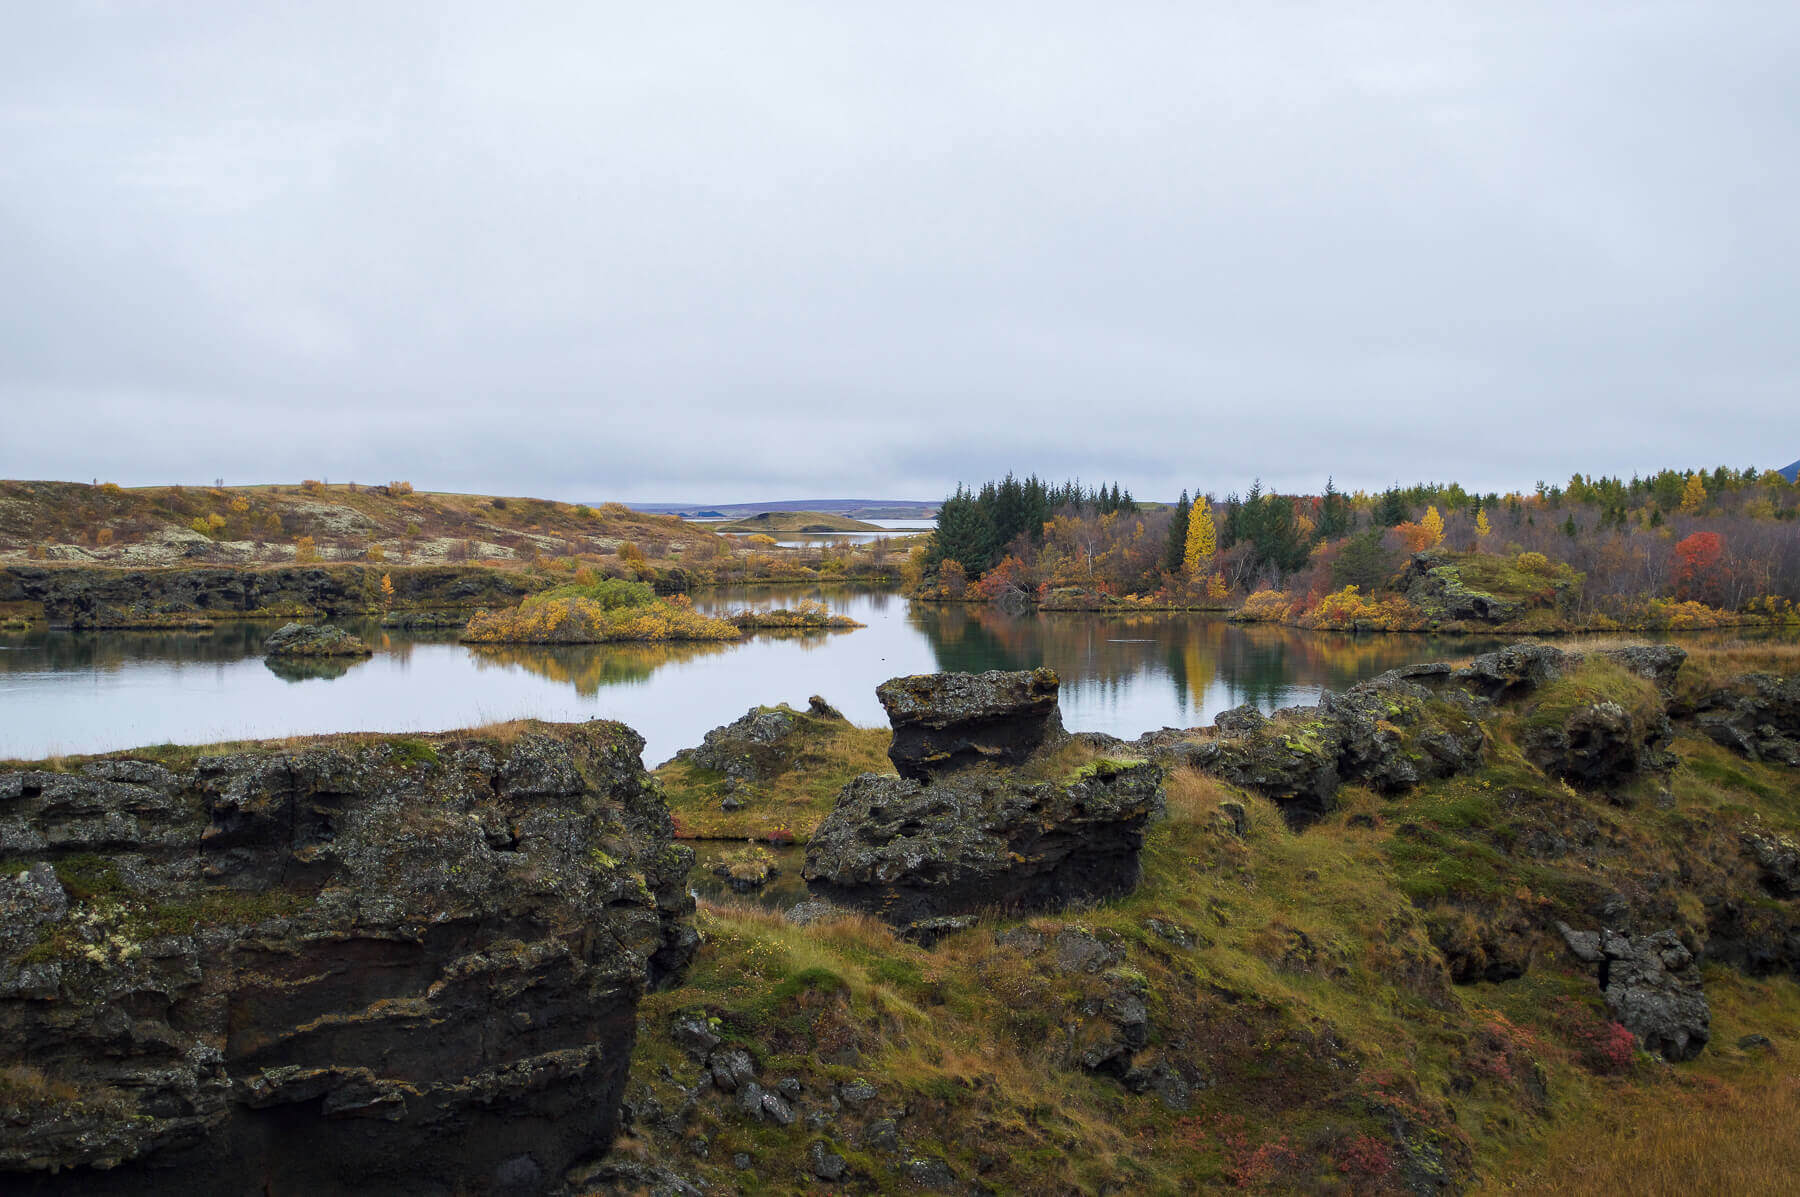 A lake surrounded by rocky land an autumnal trees